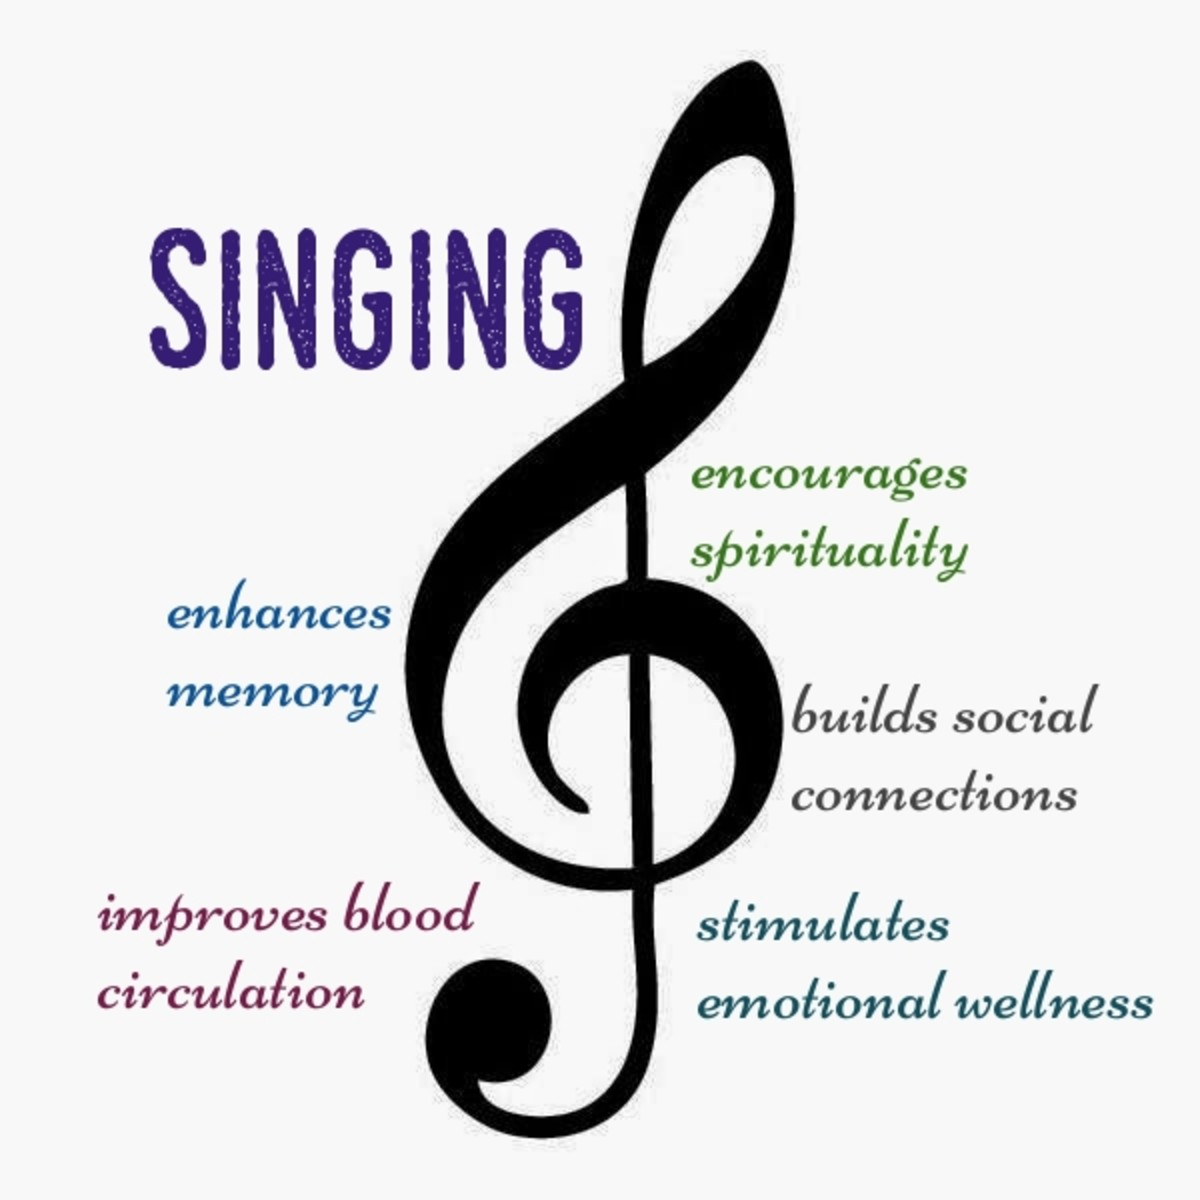 How Singing Can Improve Your Health